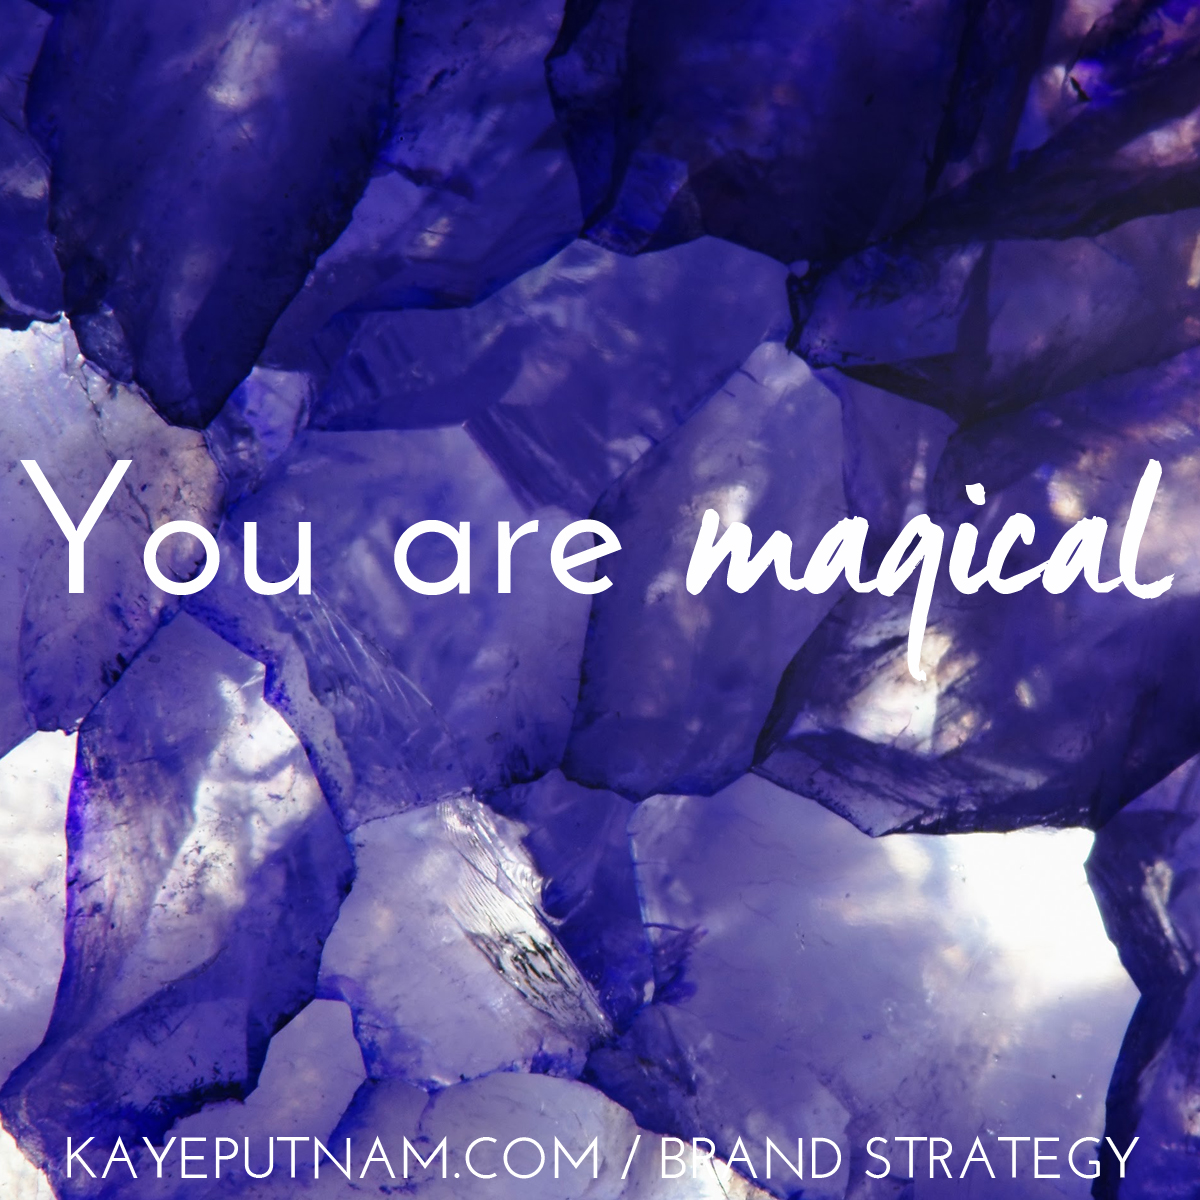 You are magical. #InDemandBrand